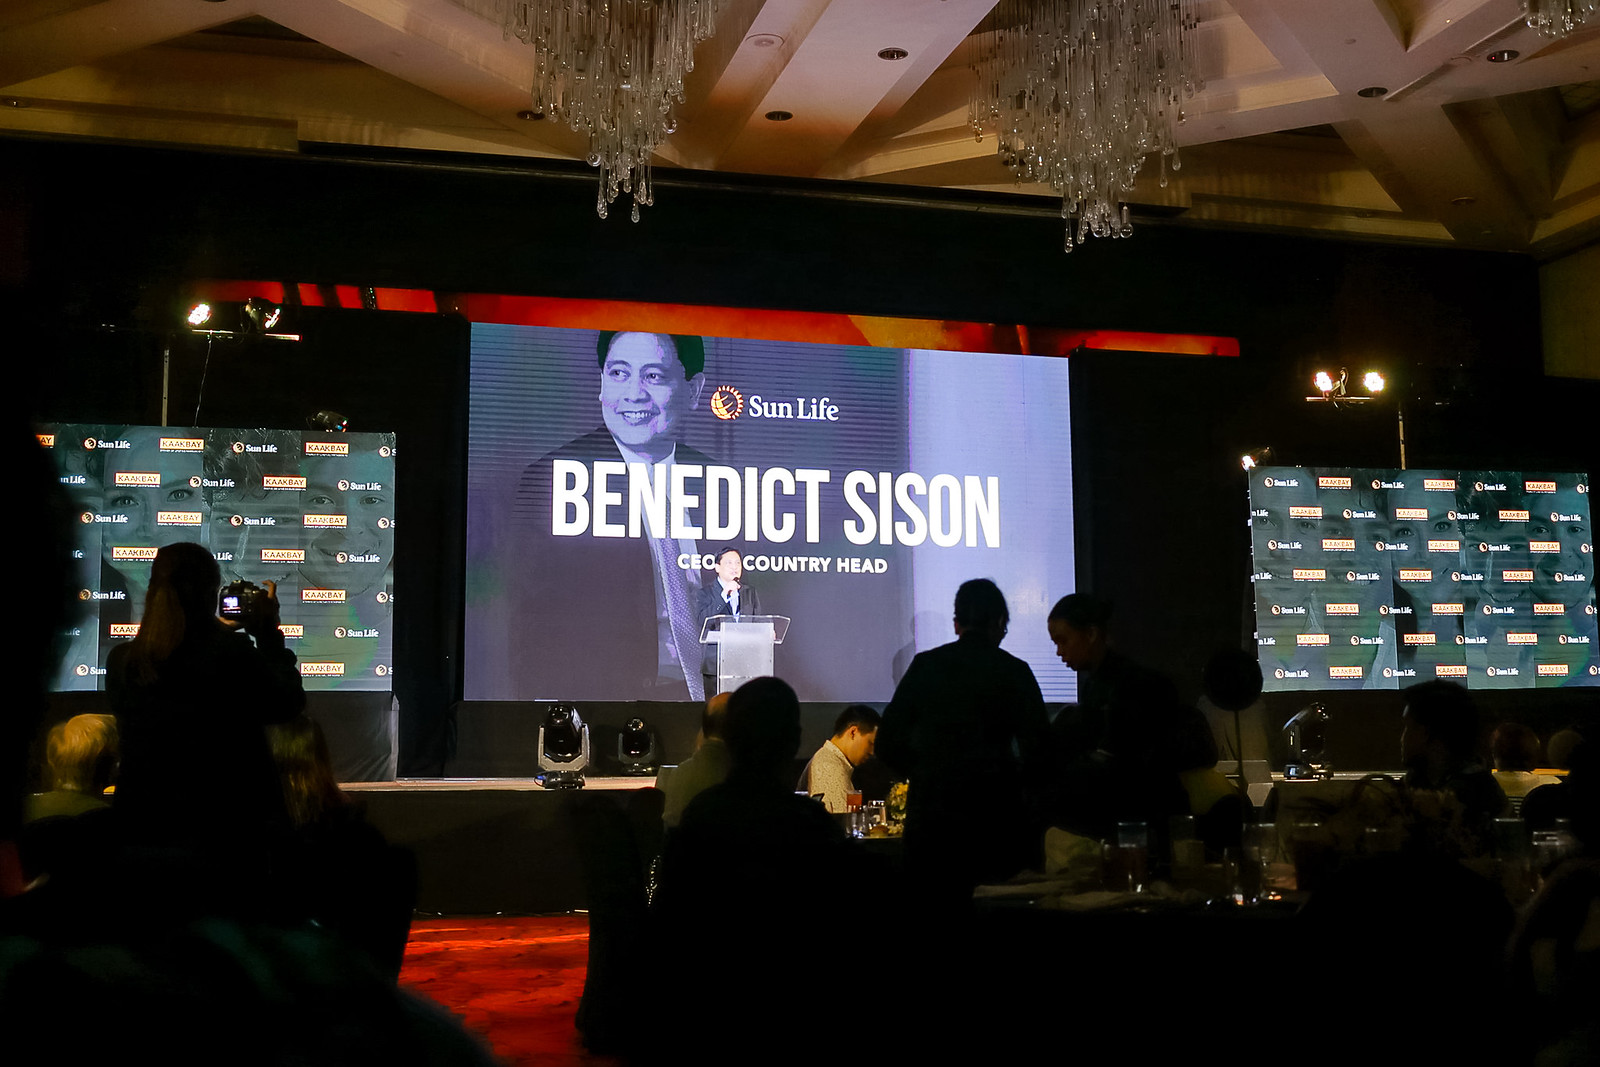 Sun Life's CEO & Country Head - Benedict Sison